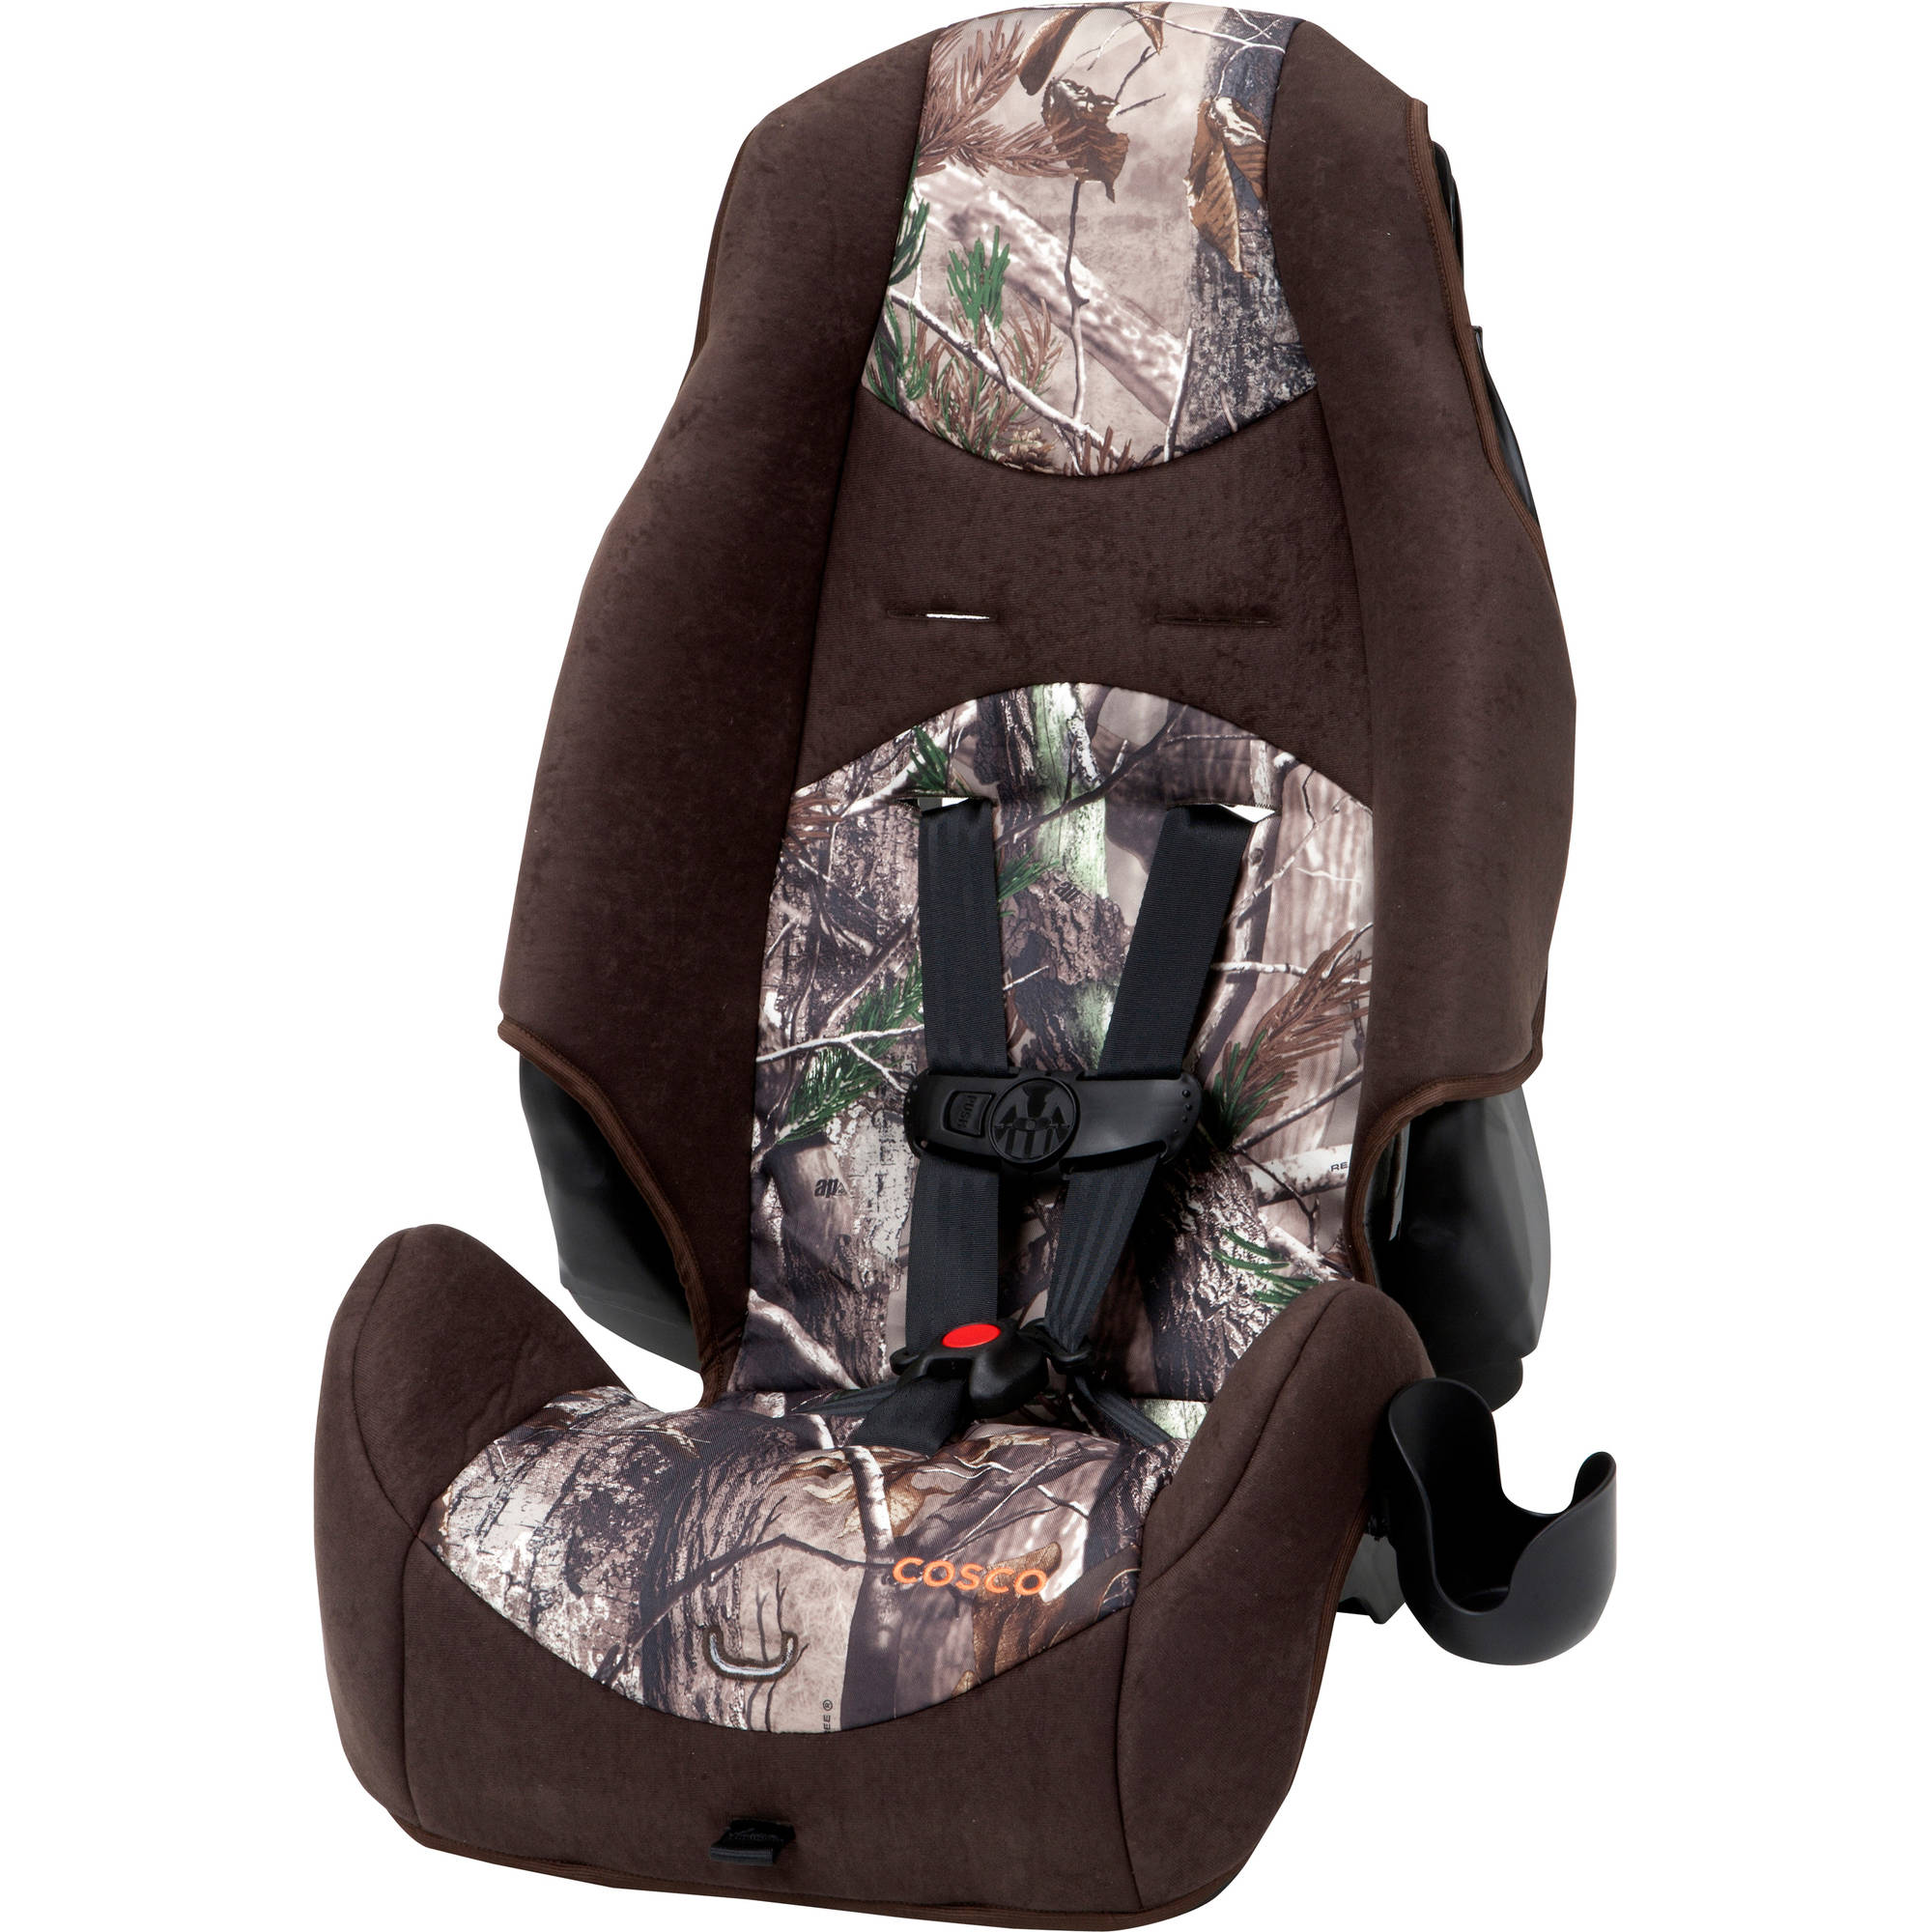 Cosco Highback 2-in-1 Booster Car Seat, Realtree Ap